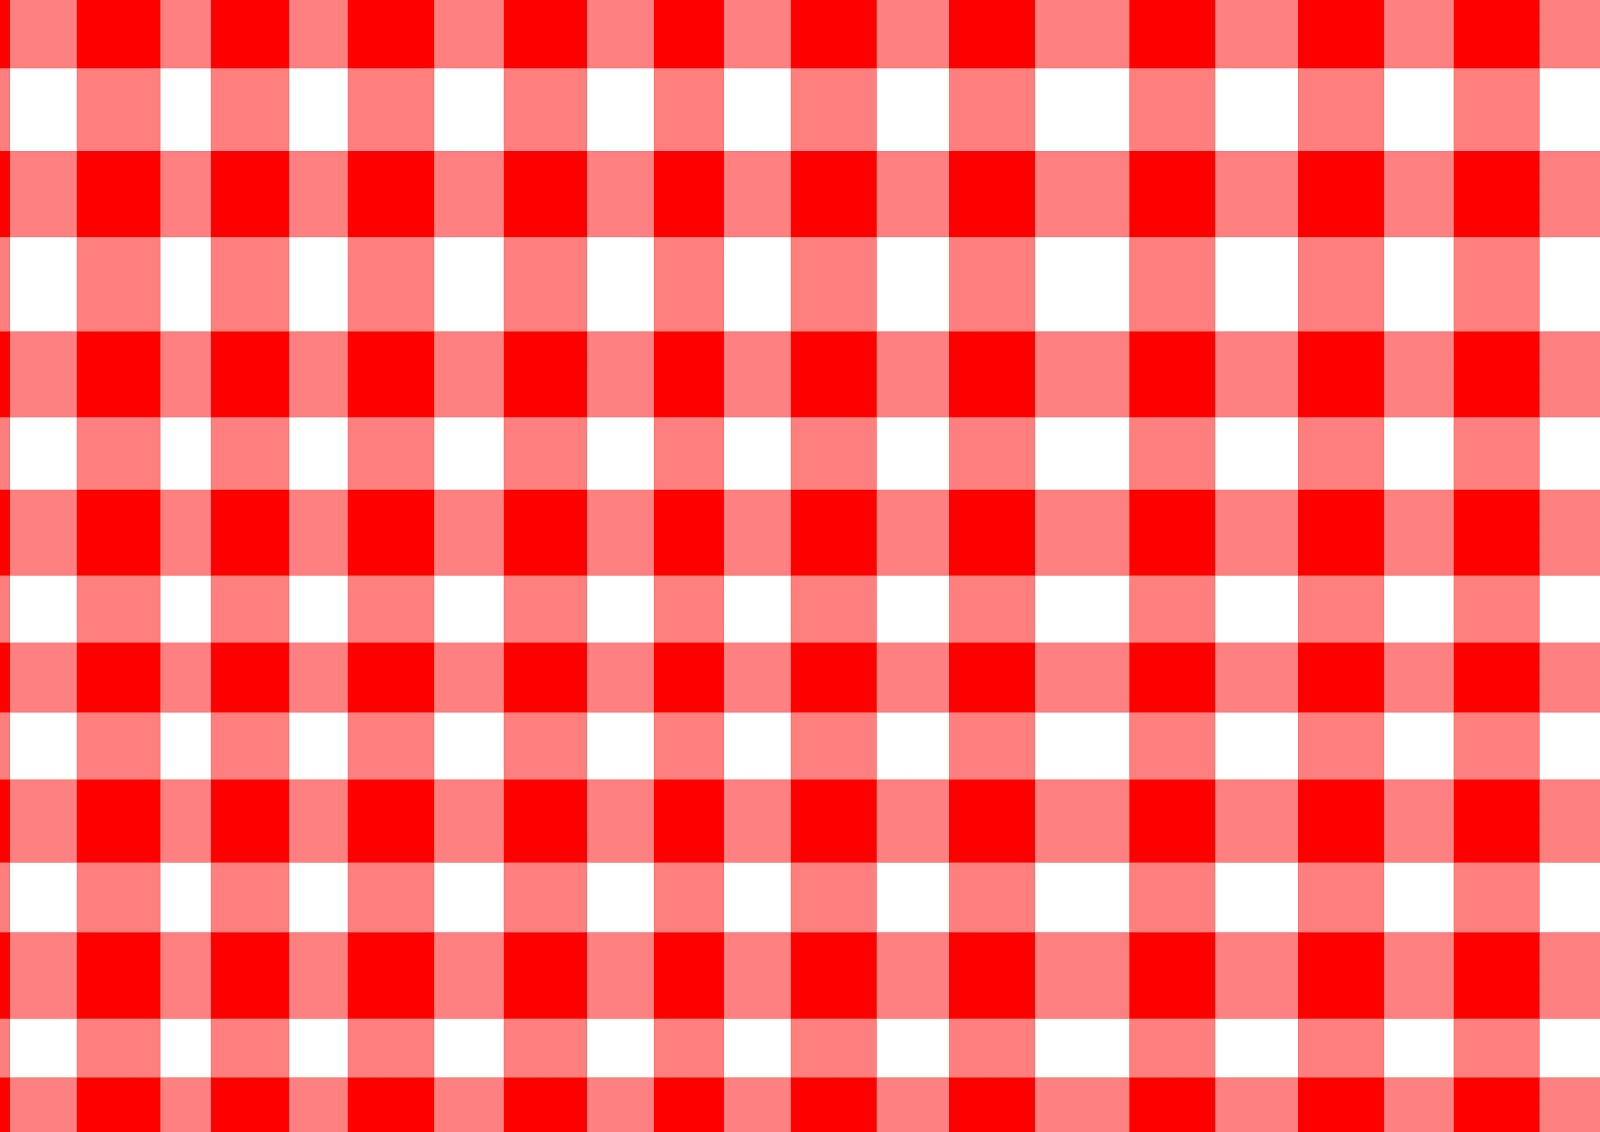 red and white checkered box clipart clipground checkerboard border clipart checkerboard clip art black and white